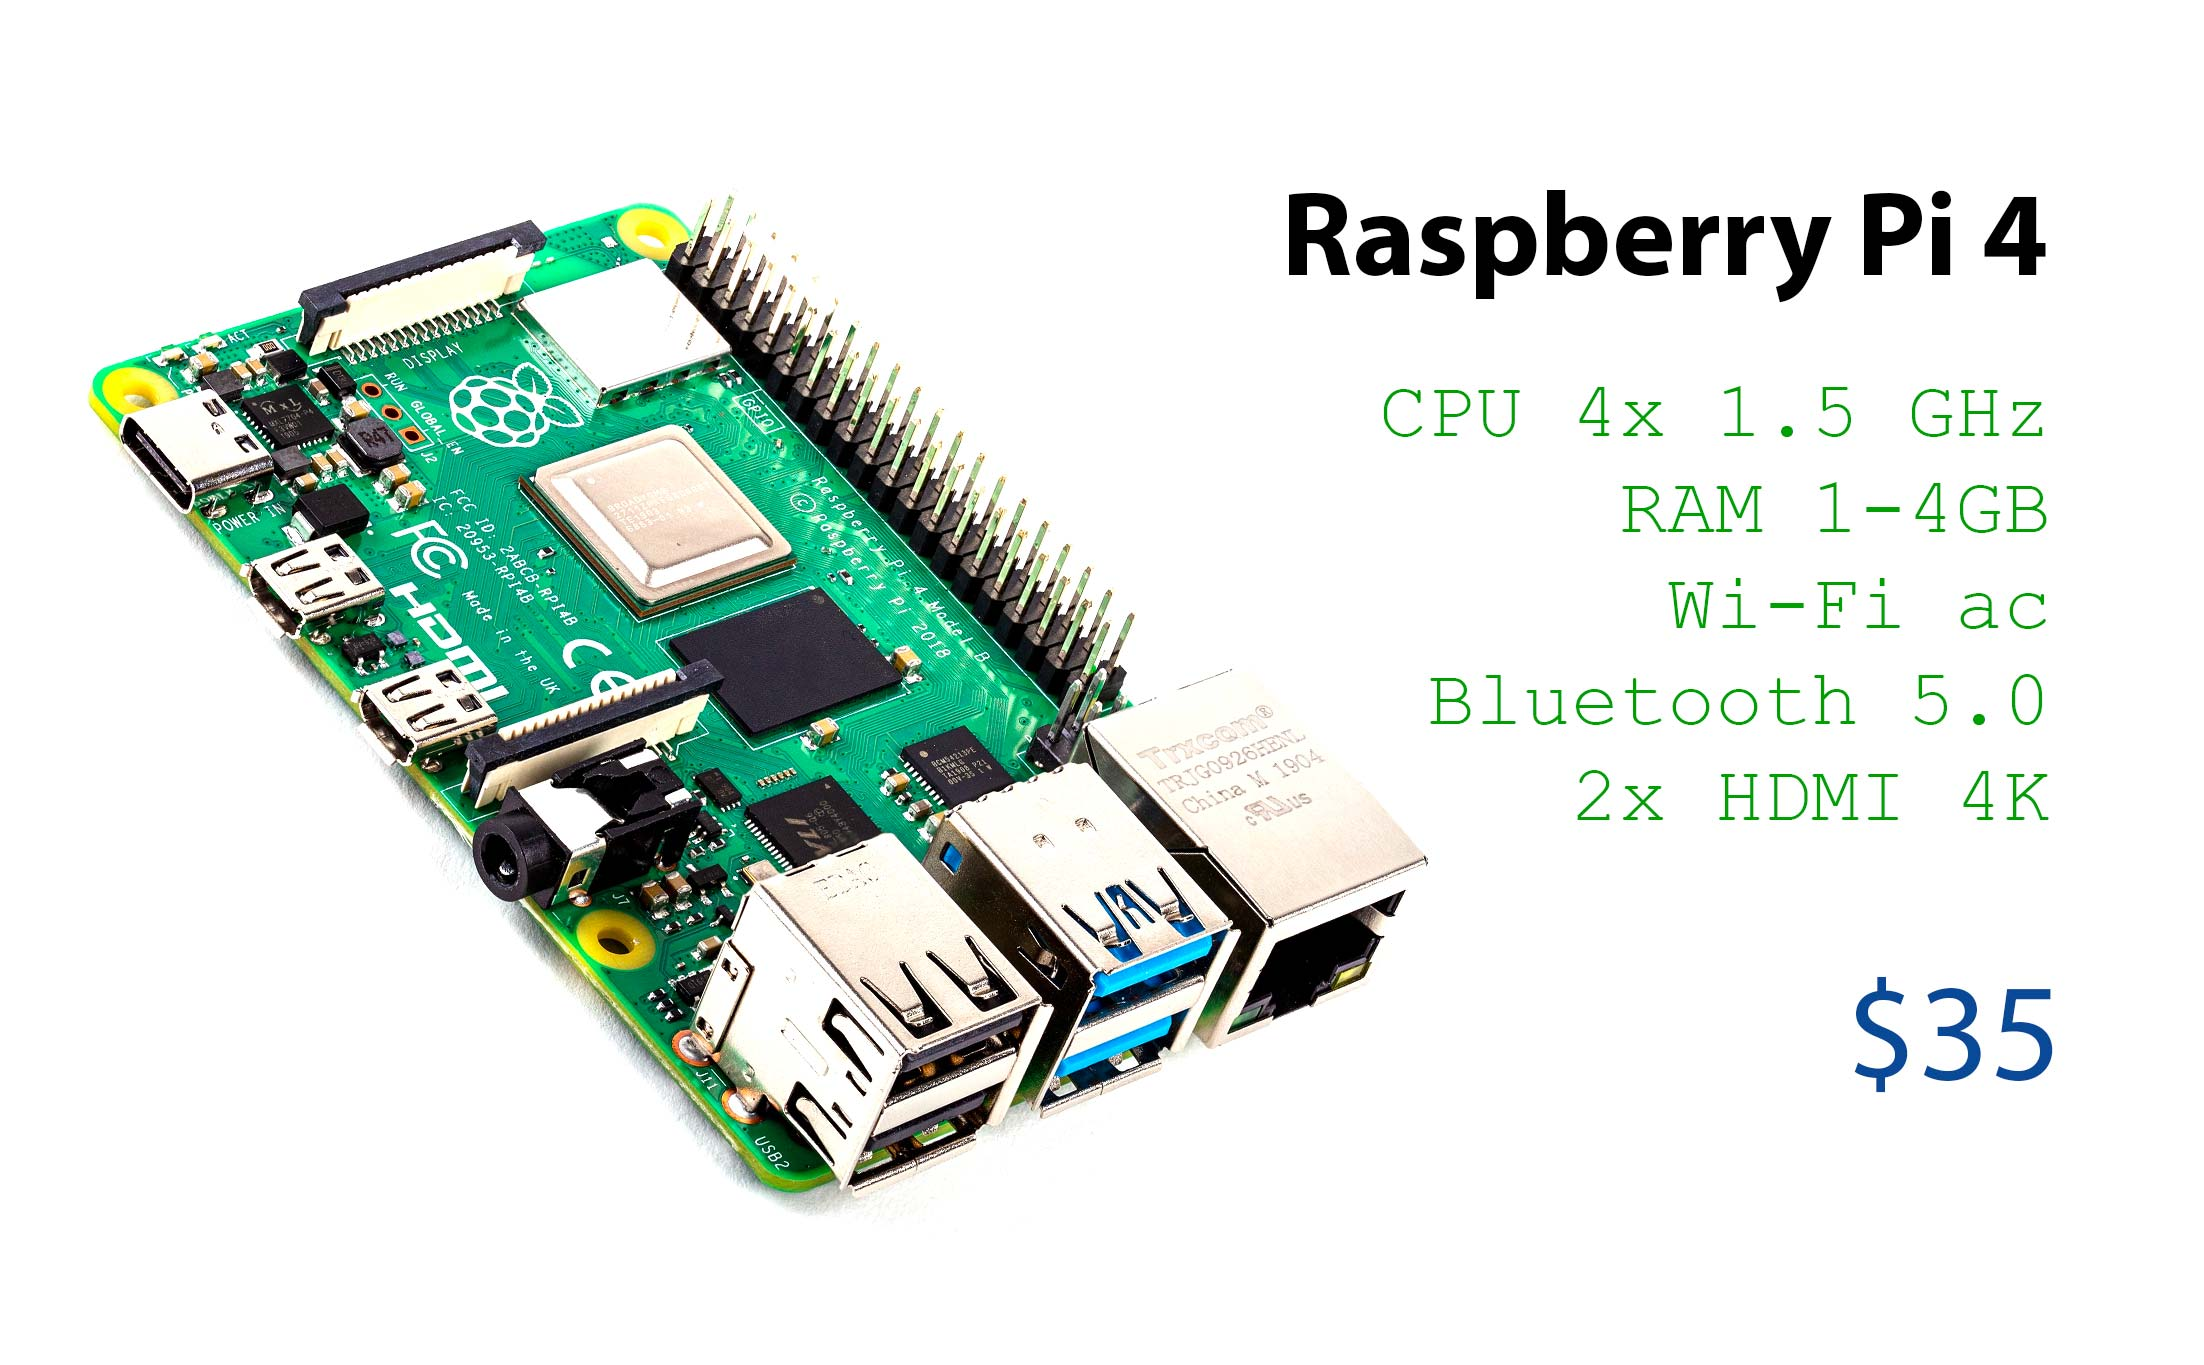 Official Raspberry Pi 4: 3 times faster CPU, 2 4K screen output, faster connection, cost from $ 35